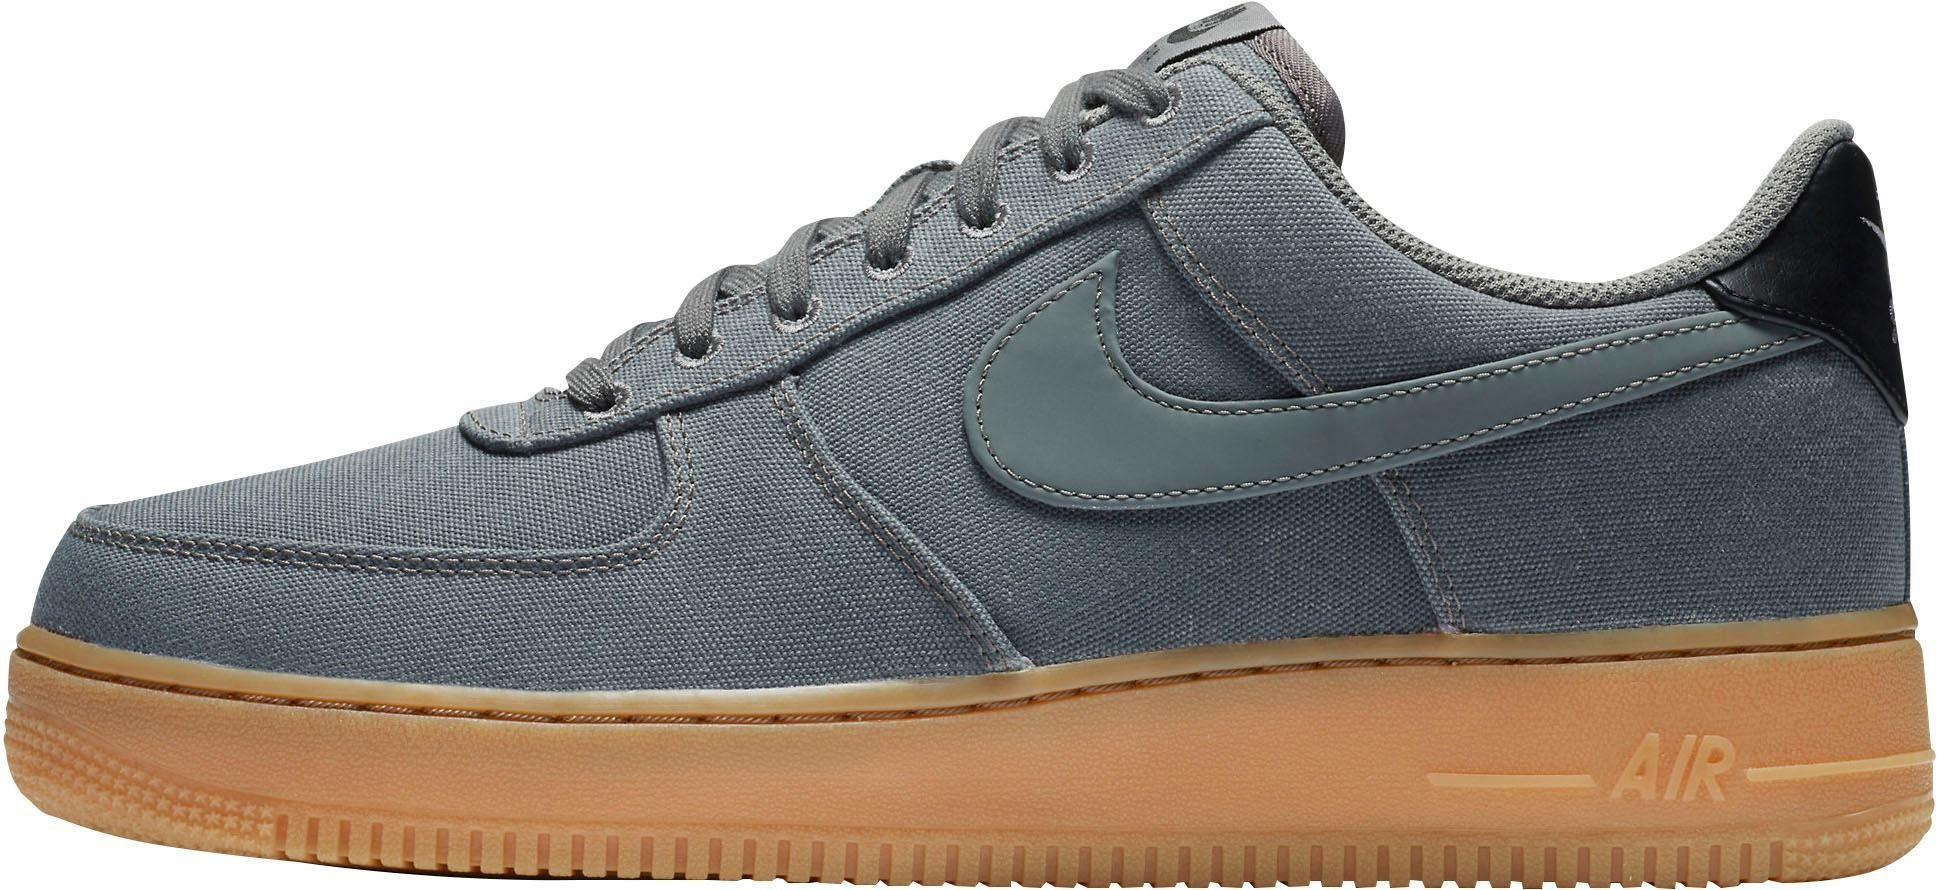 Sportswear sneakers »AIR FORCE 1 '07 LV8 STYLE«